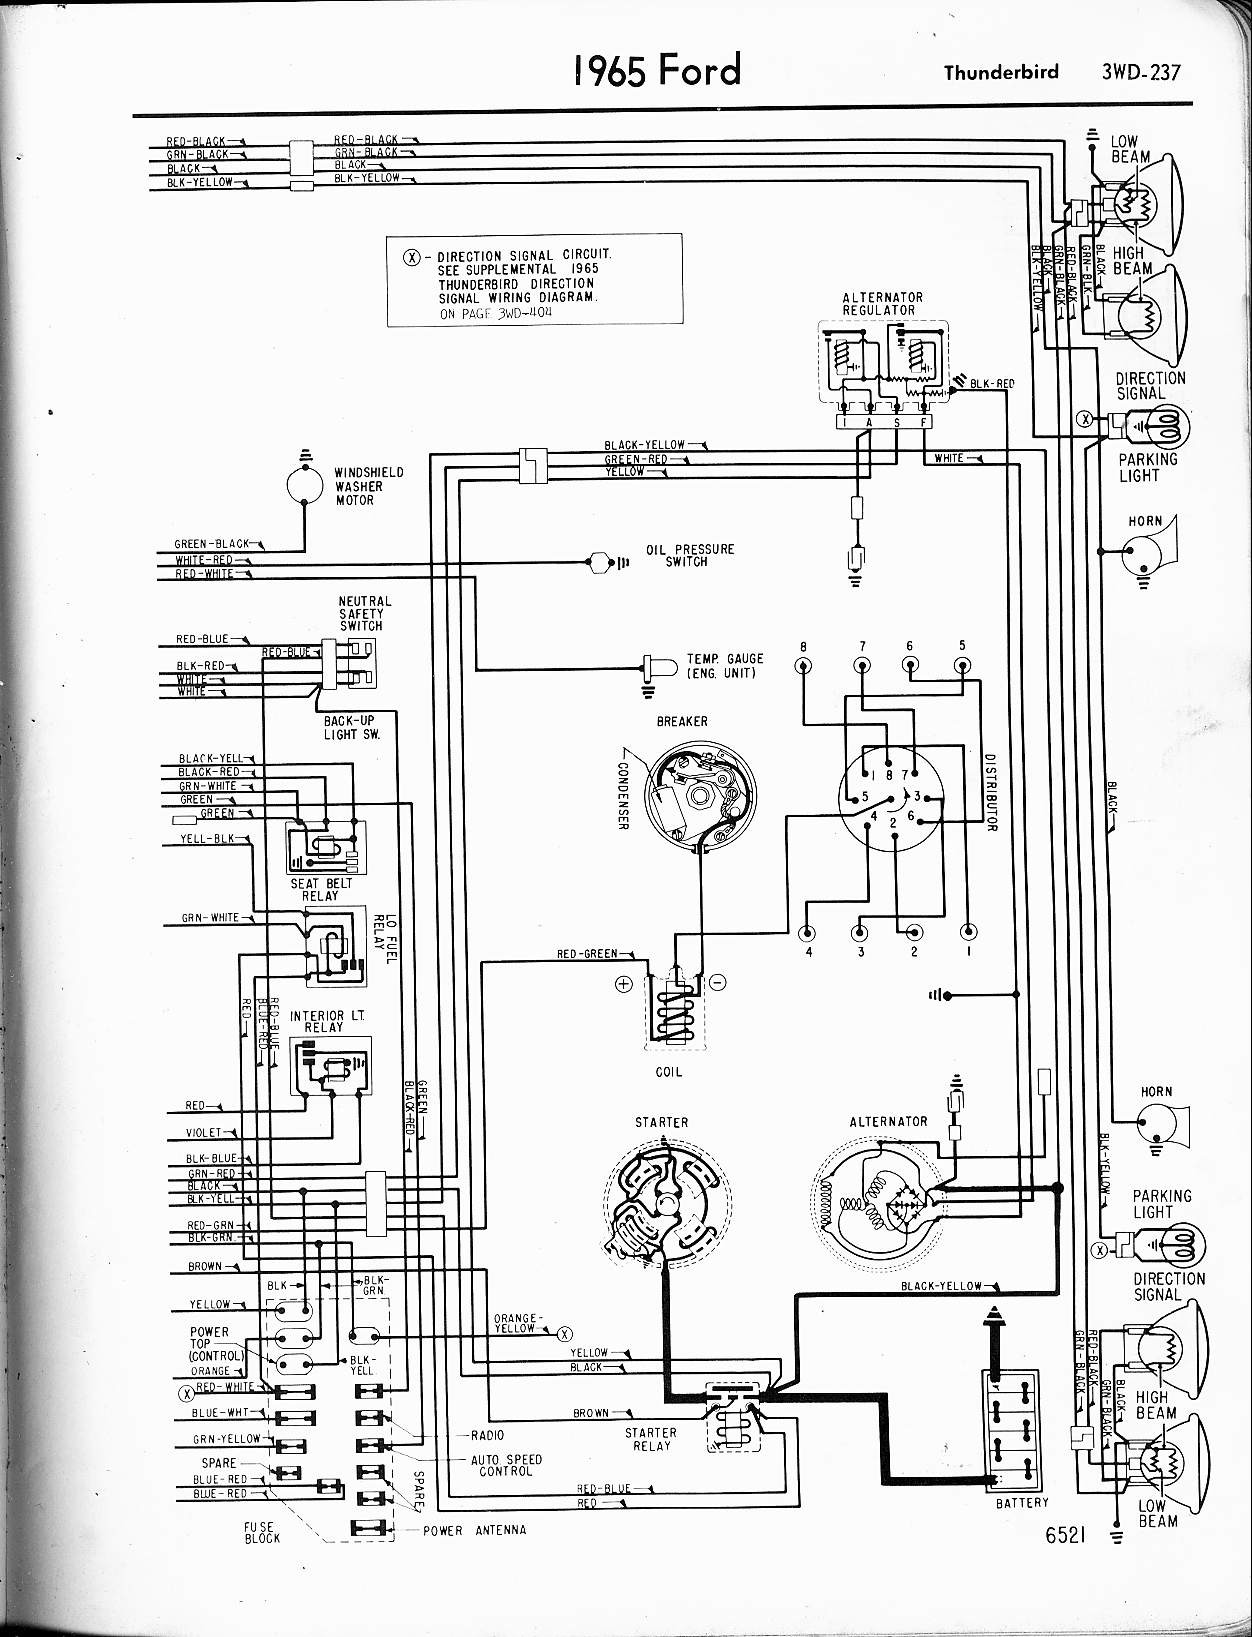 Speaker Wiring Diagram Series Vs Parallel Inspirational Guitar 57 65 Ford Diagrams Rh Oldcarmanualproject Configurations